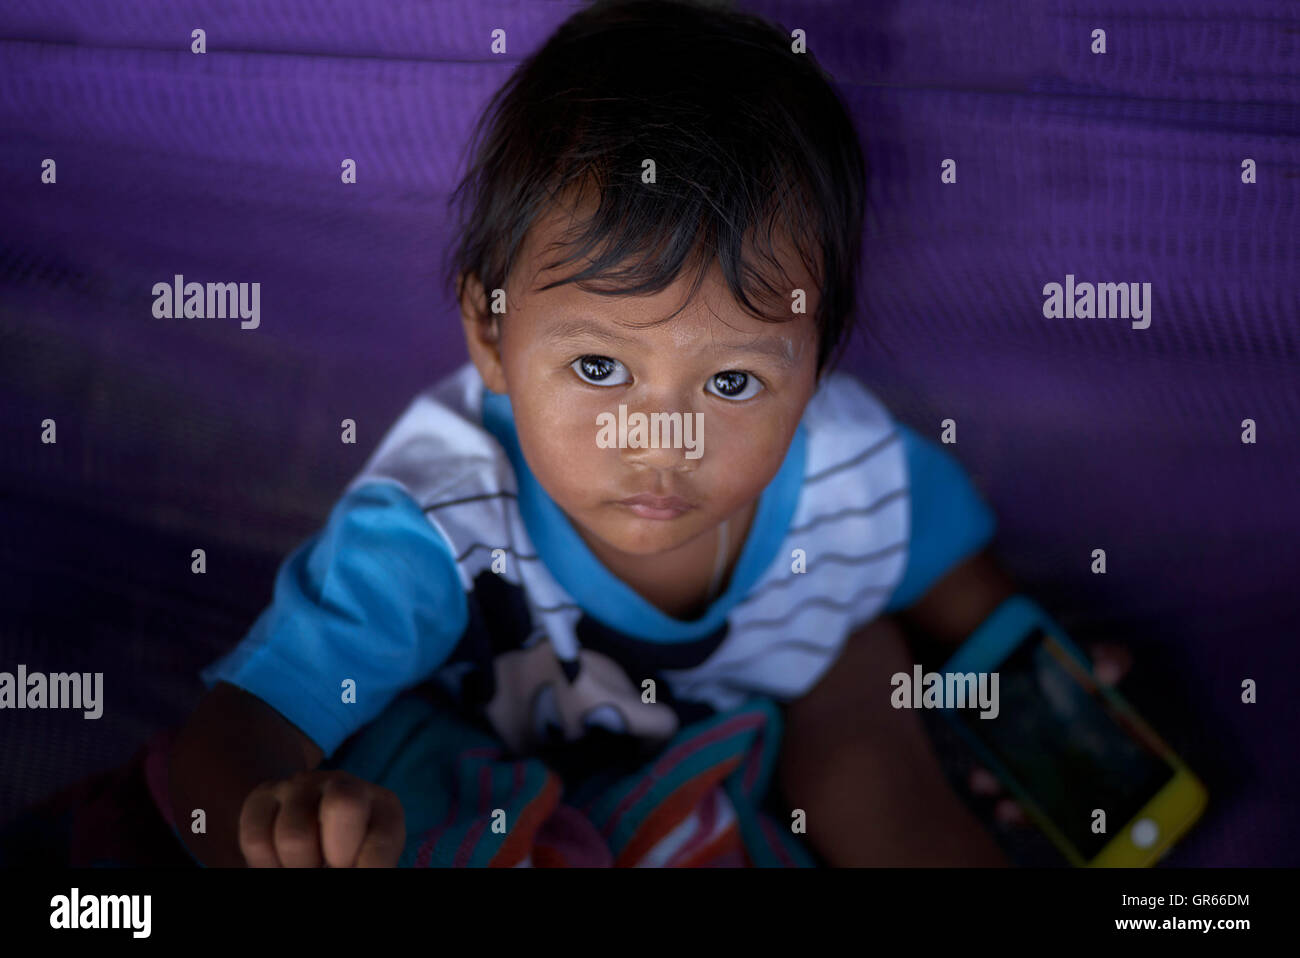 Looking down at a wide eyed child. Thailand S. E. Asia - Stock Image